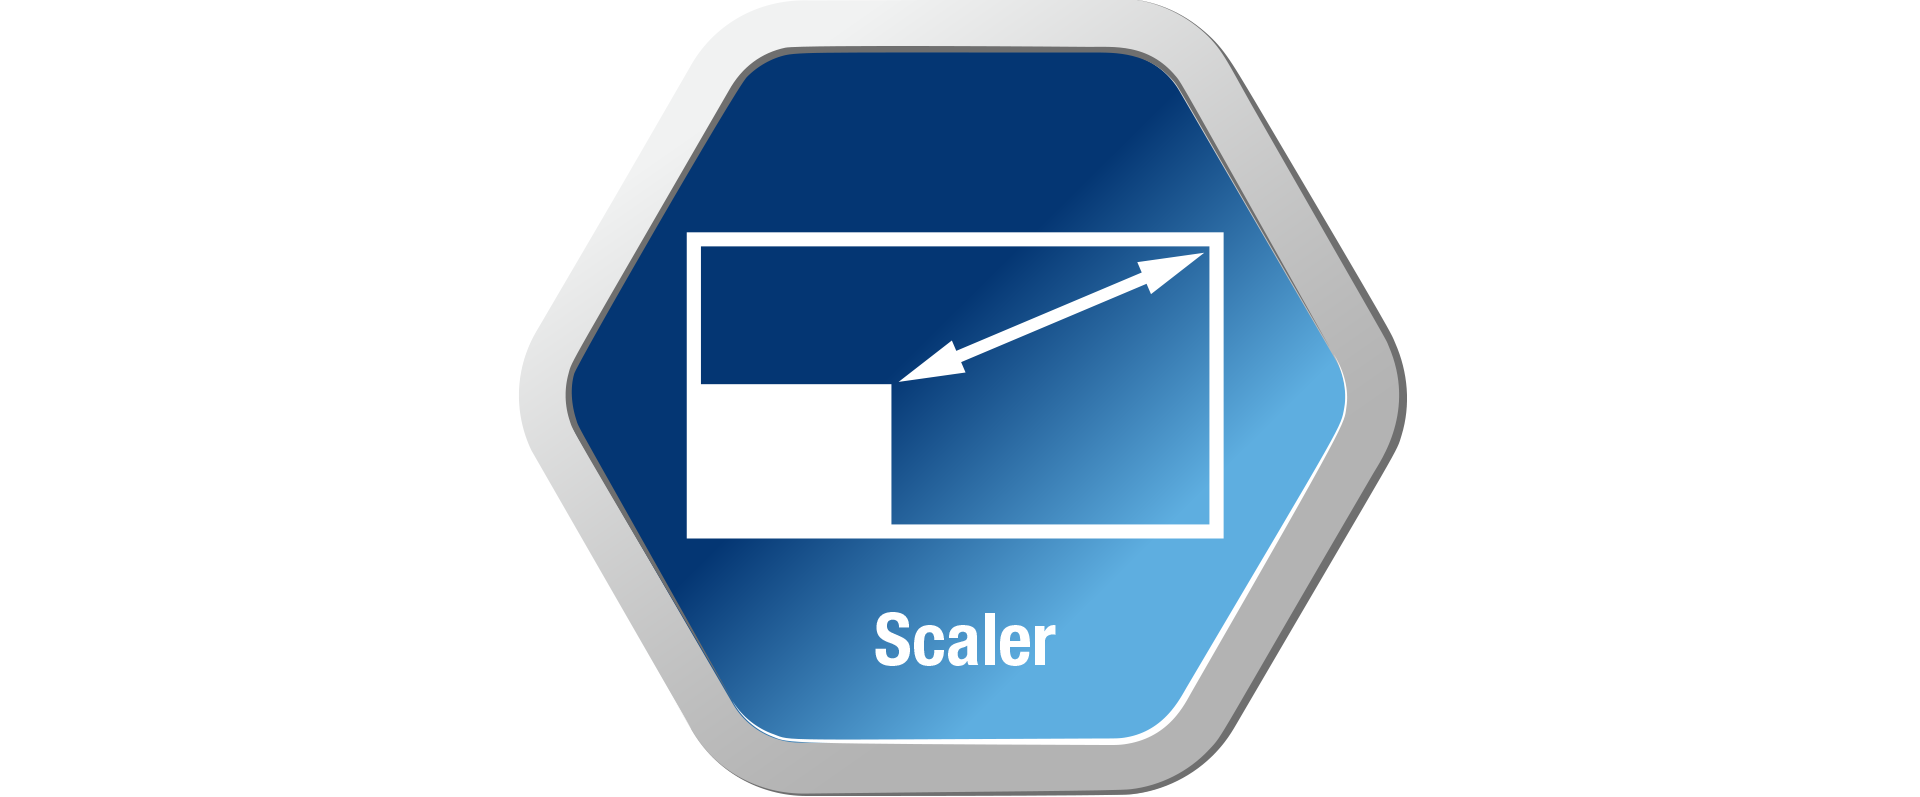 High-Quality Software Scaler